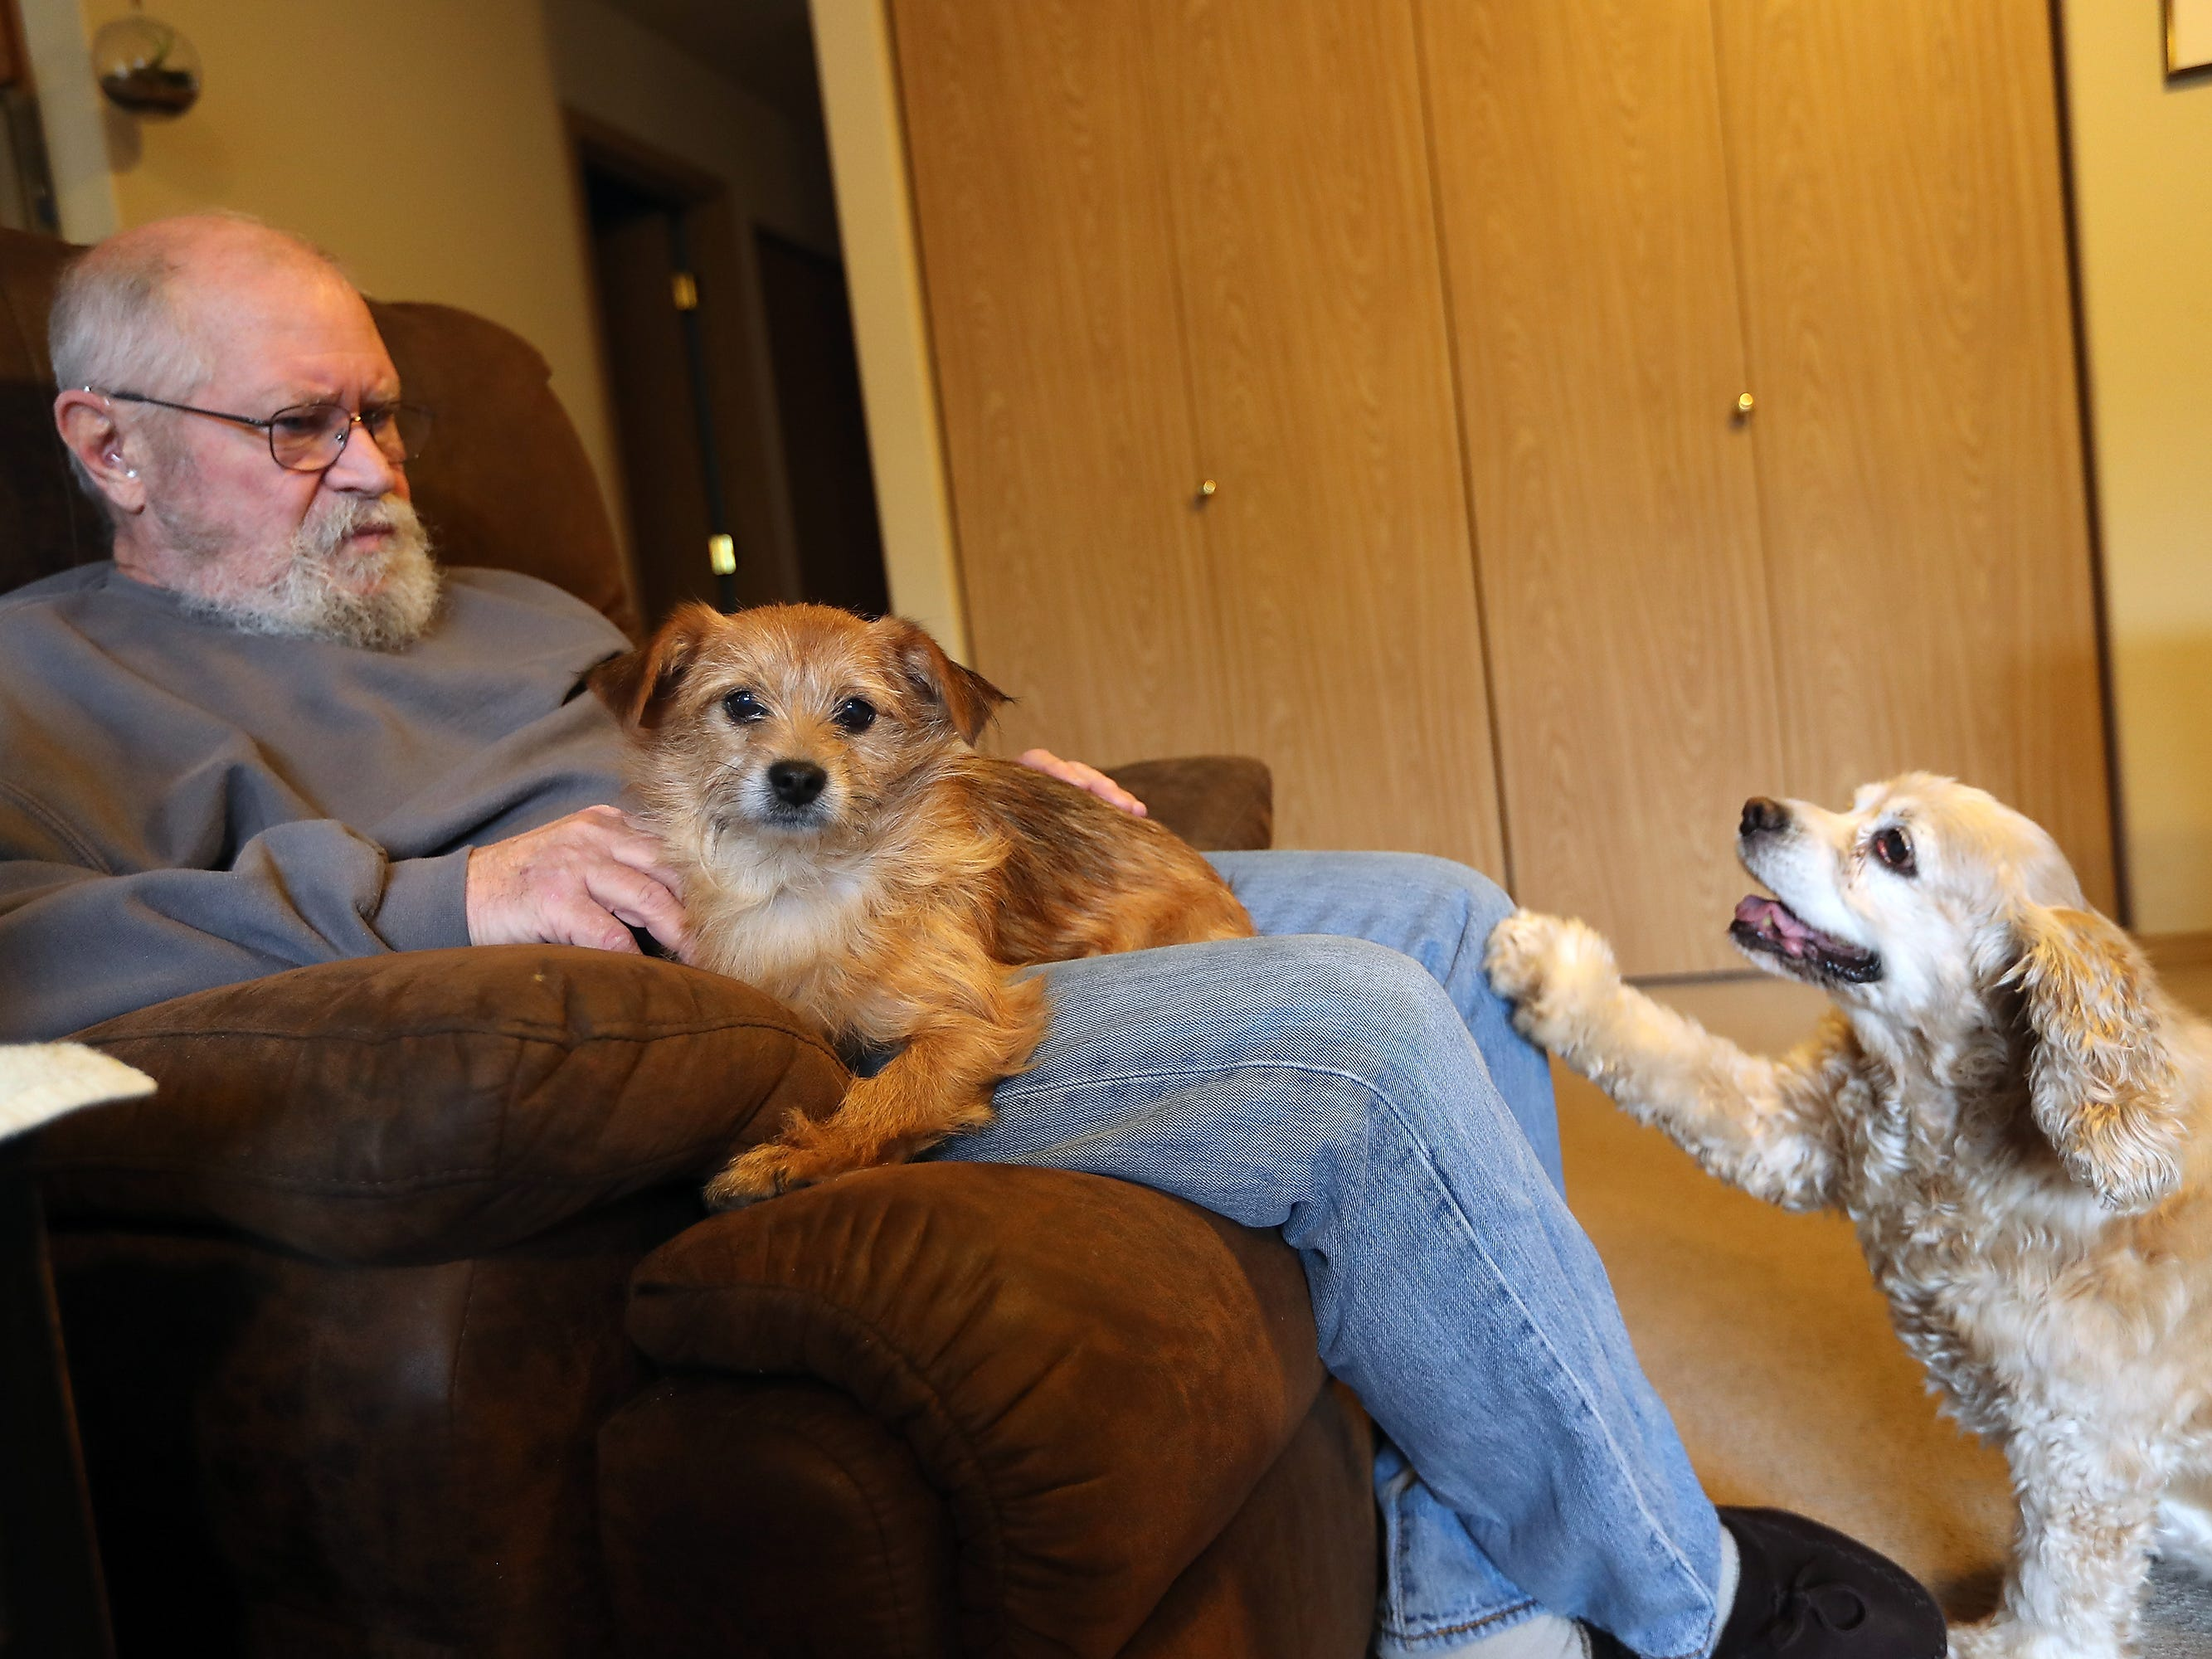 John O'Connor's dog Ladybug puts her paw on his leg to get his attention as Spanky sits in his lap at their Port Orchard home on Thursday, December 20, 2018.